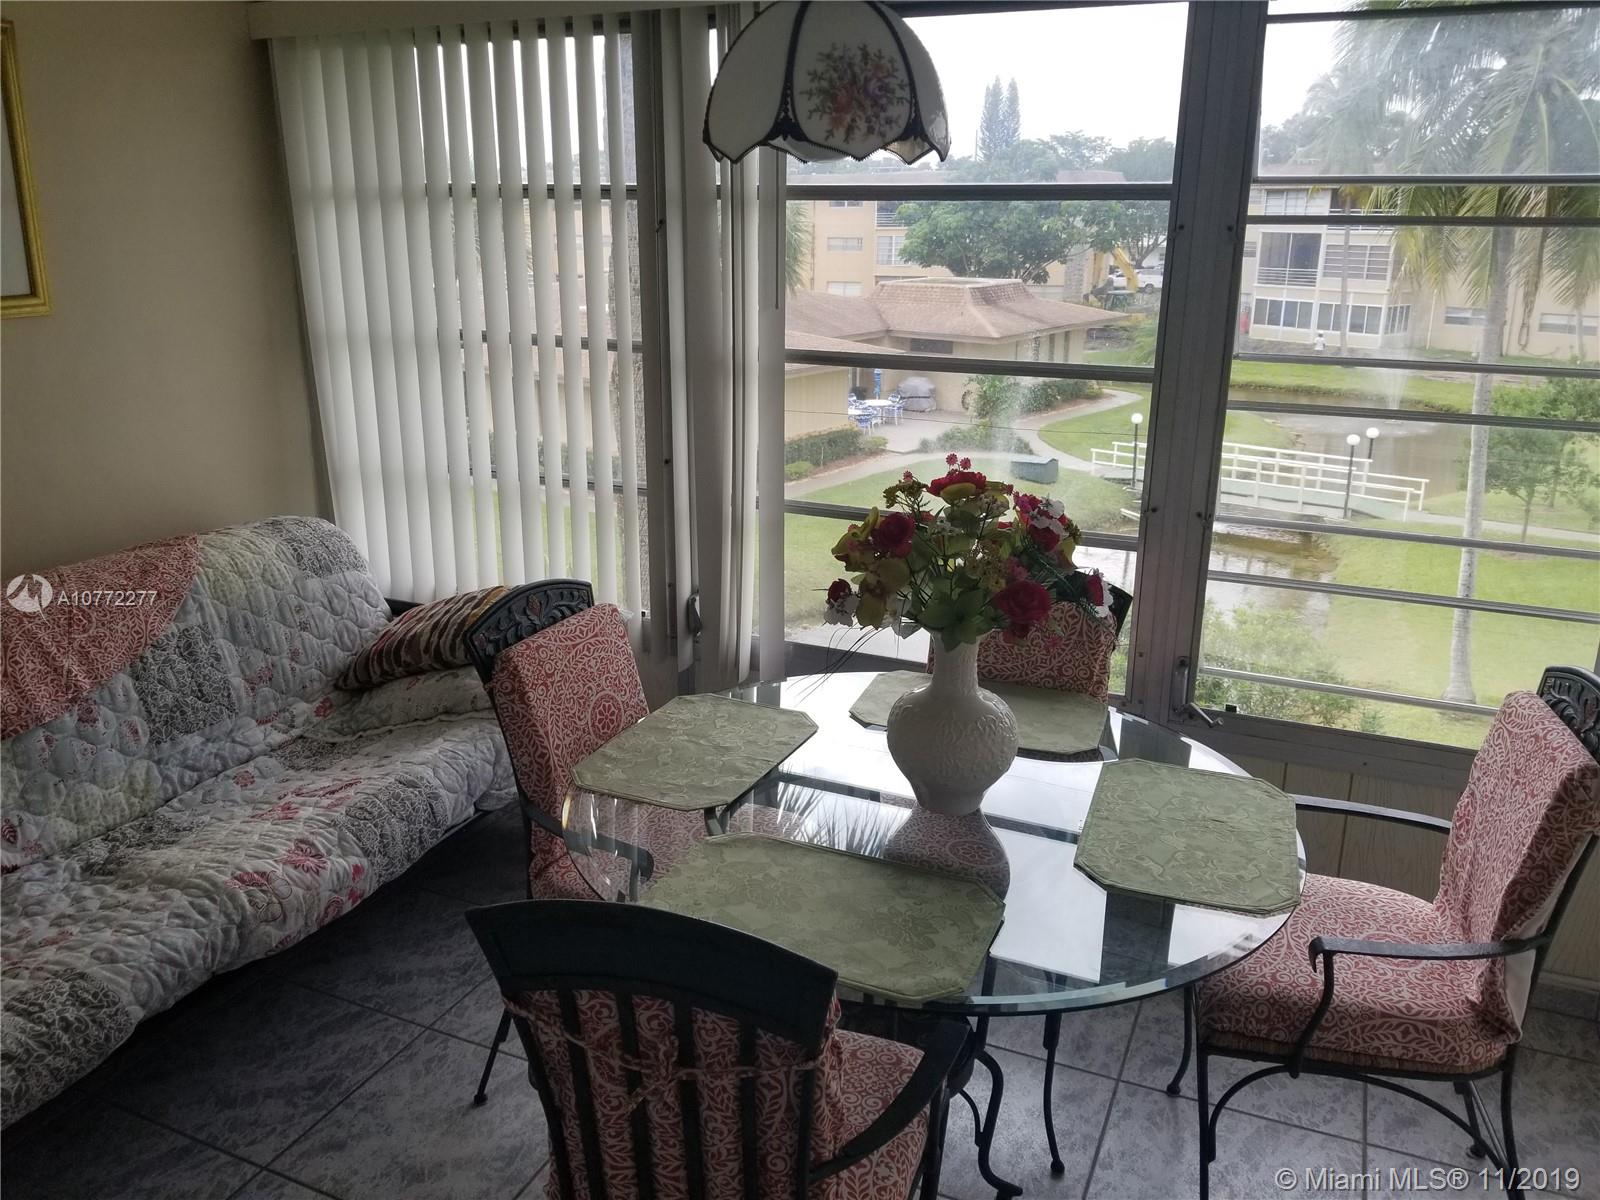 COZY 2/2 CONDO IN FT. LAUDERDALE.  SPACIOUS LAY-OUT.  BEAUTIFUL VIEW FROM ENCLOSED PATIO. ATTRACTIVELY PRICED.  CLOSE TO HIGHWAYS, PLACE OF WORSHIP AND SHOPPING.  ONLY SEASONAL RENTALS ALLOWED.  HOA INCLUSIVE OF WATER AND SEWER IS $328 PER MONTH PLUS AN ADD'L $100 TOWARDS RESERVES (SHOULD BE REDUCED TO $50 IN THE NEAR FUTURE).